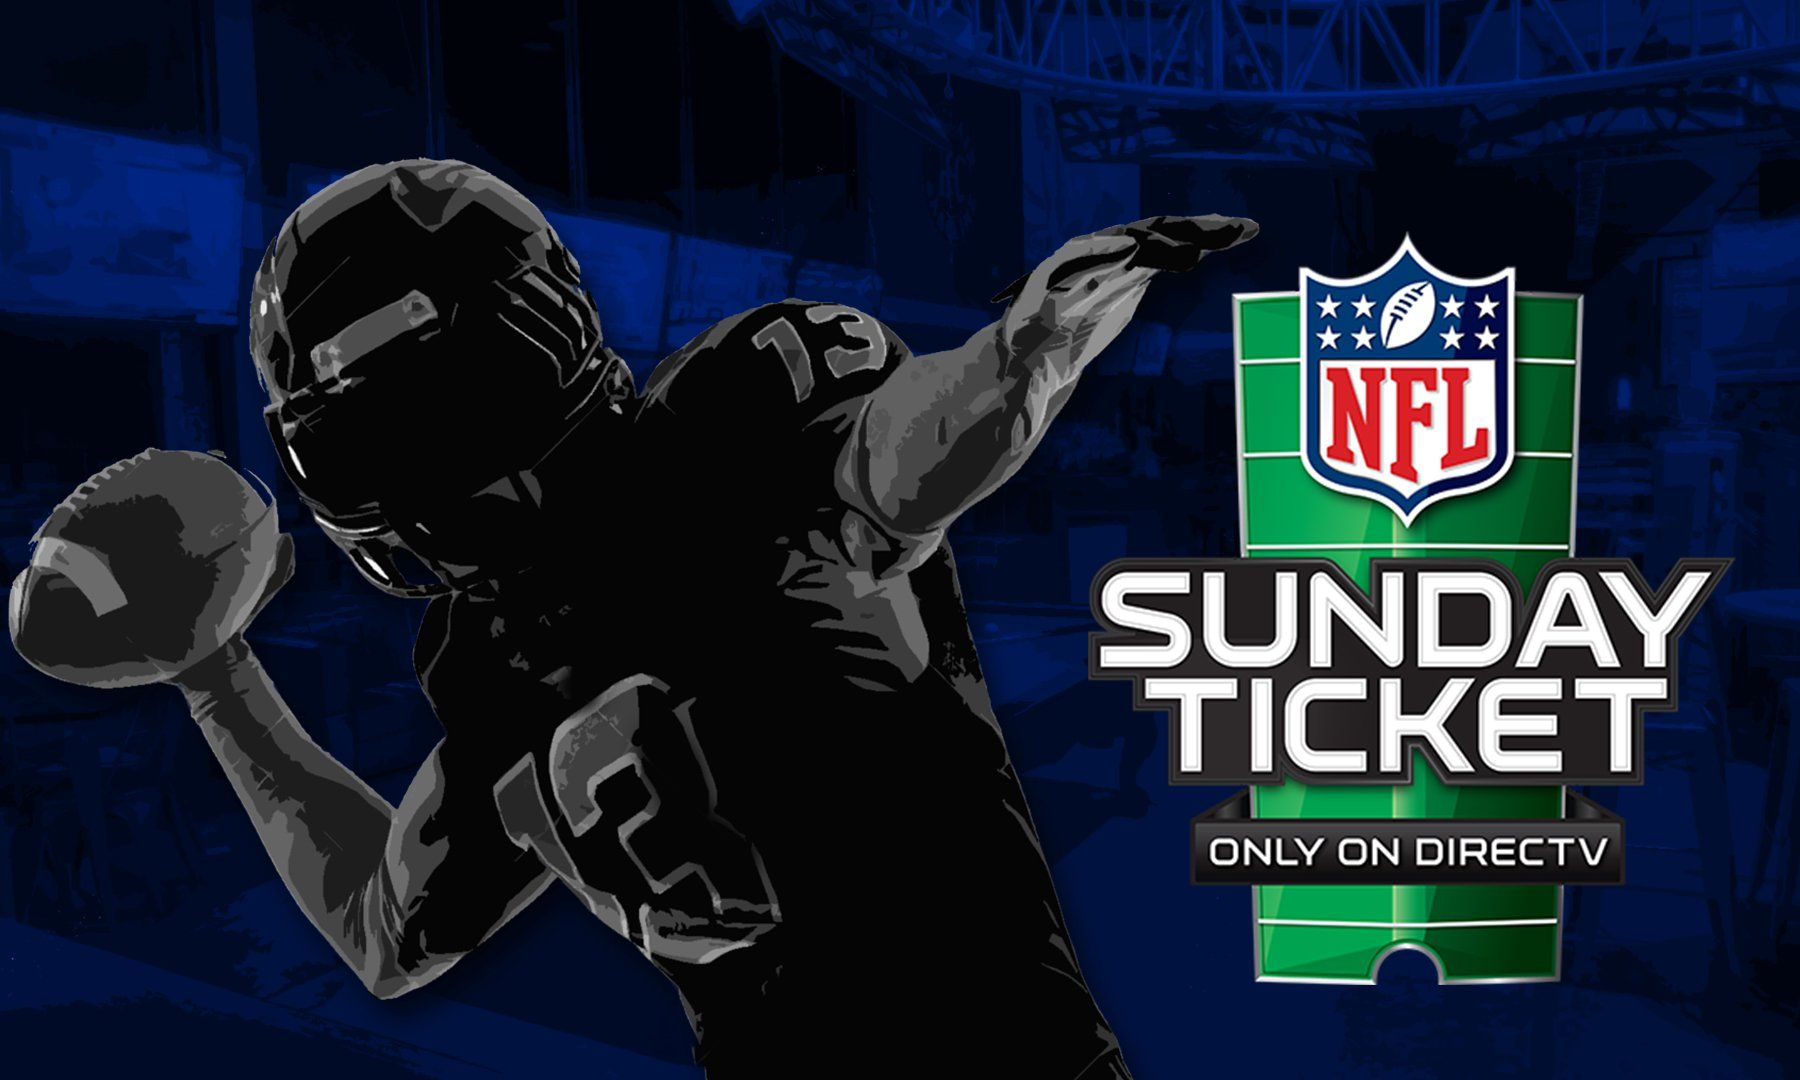 Nfl Sunday Ticket Canceled Directv Closing The Service Due To